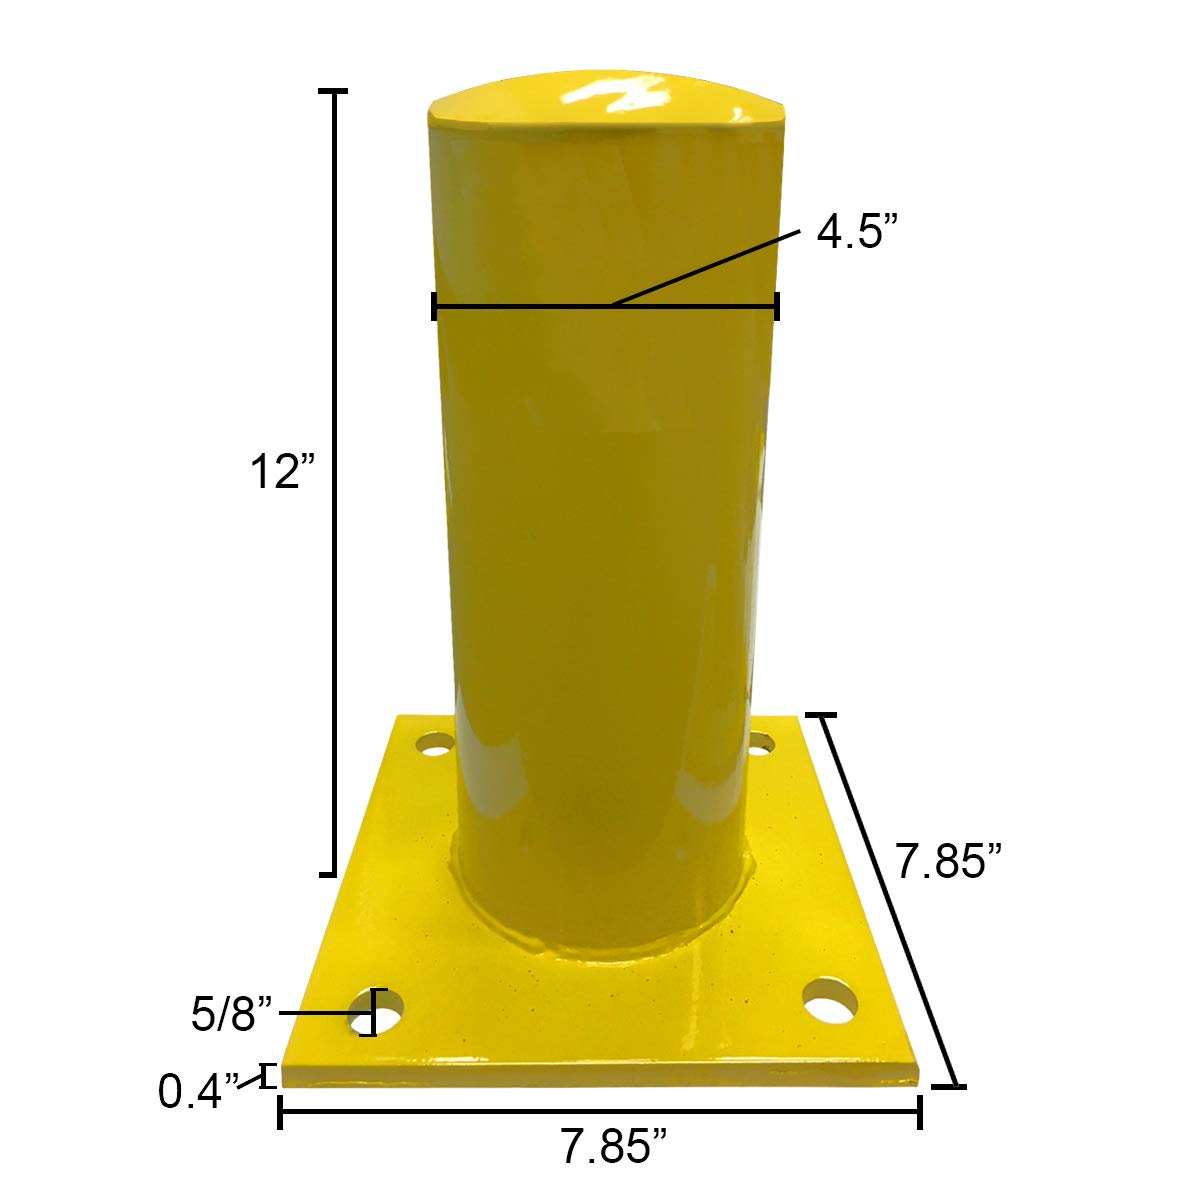 12 Height - 4.5 OD Electriduct 1 Foot Steel Pipe Safety Bollard Post Yellow//Black Stripe Parking Lot Traffic Barrier - Pack of 2